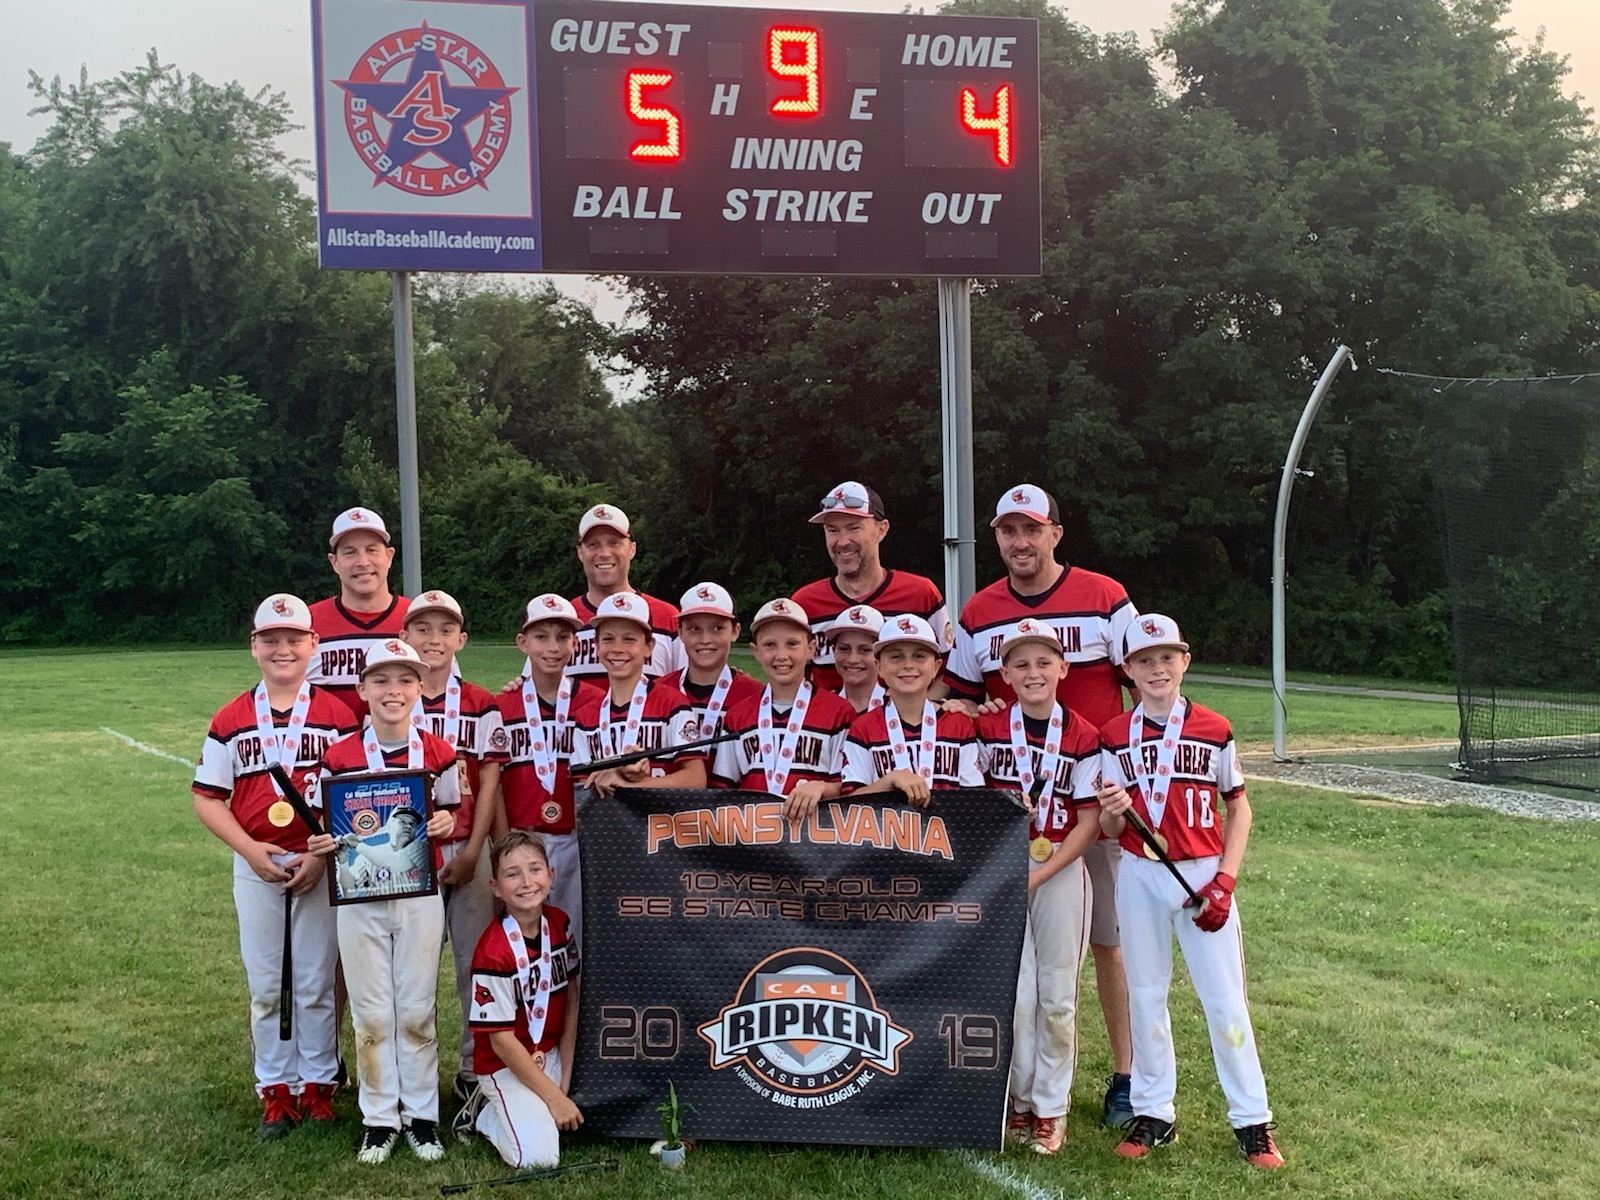 Congratulations to the 10U Upper Dublin Cardinals travel baseball team for winning the SE Pennsylvania State Championship. The team advanced to the Mid-Atlantic Regional Tournament in Buffalo, NY.